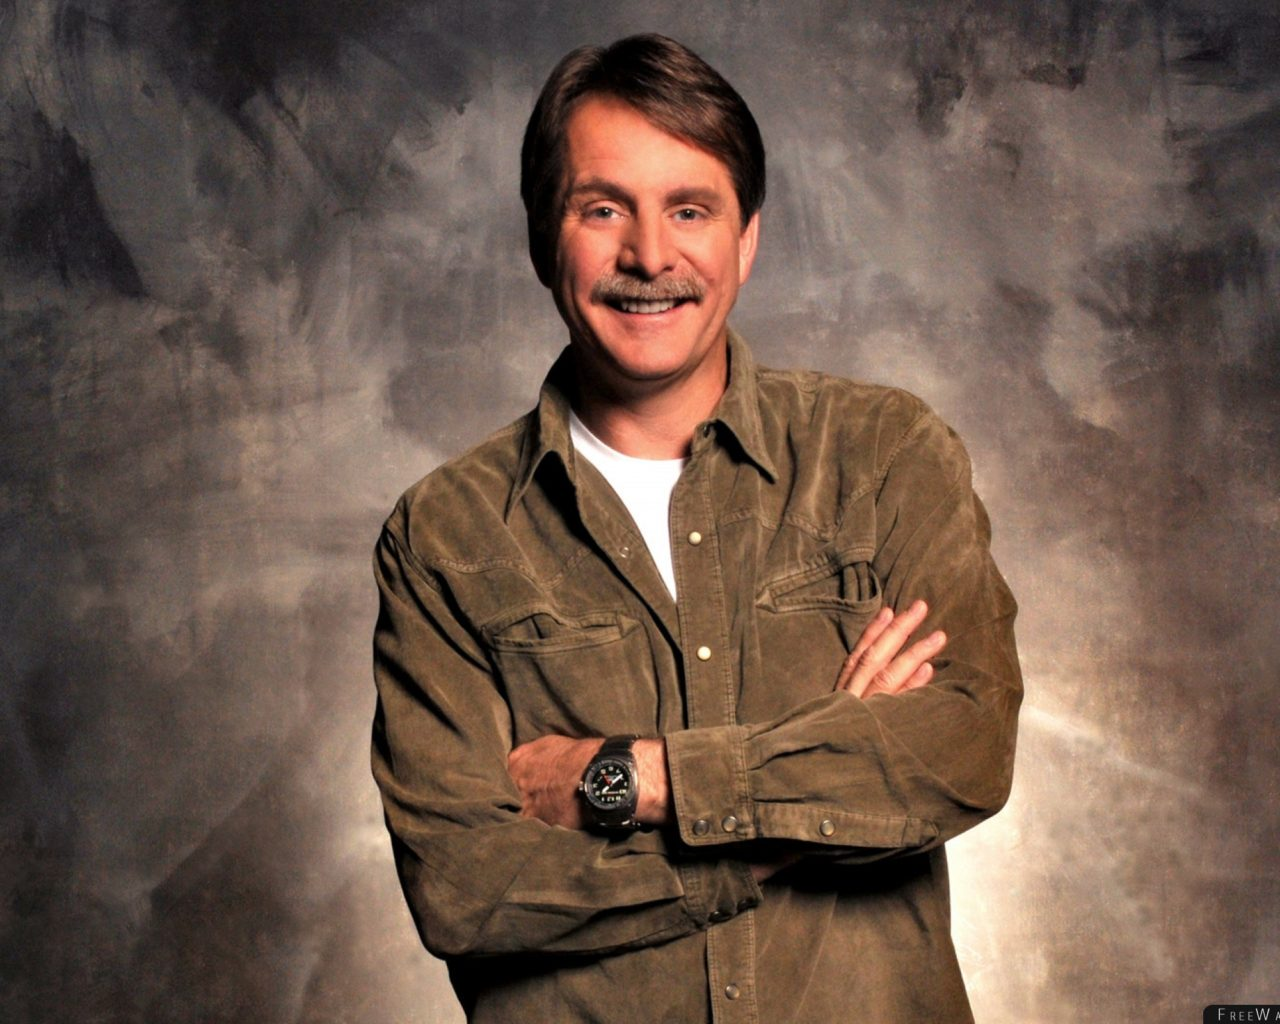 Jeff Foxworthy Shirt Watches Mustache Smile Wallpaper - Free ...